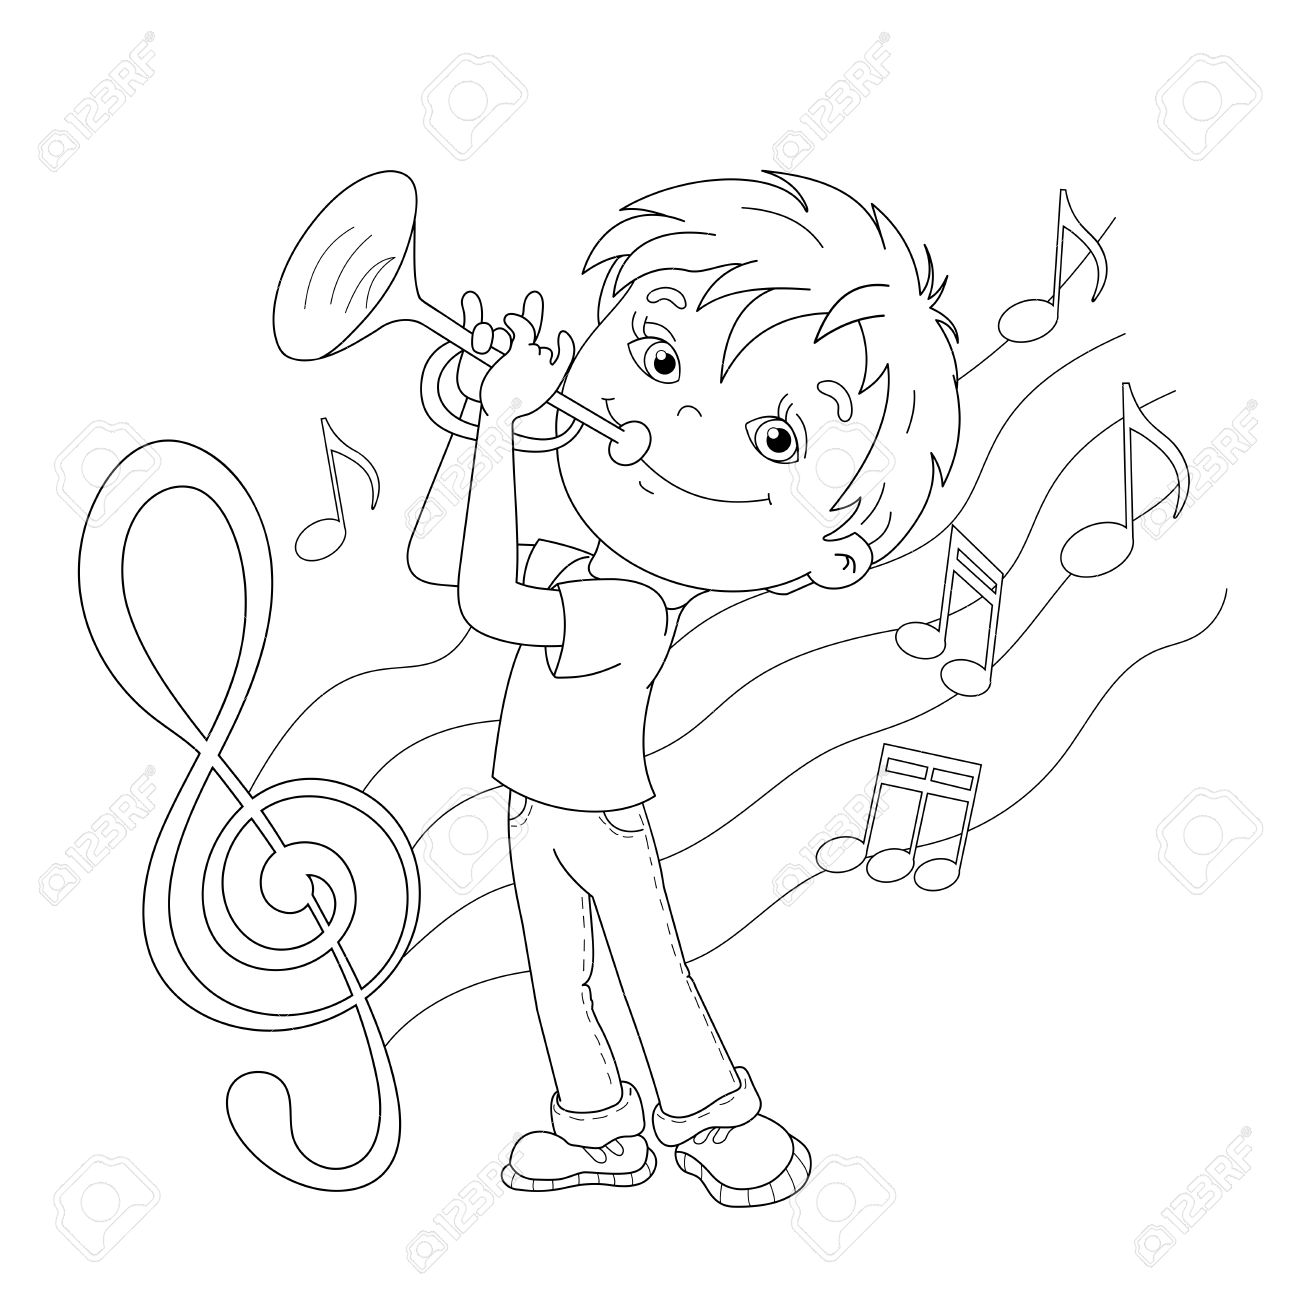 coloring page outline of cartoon boy playing the trumpet with melody and music coloring book